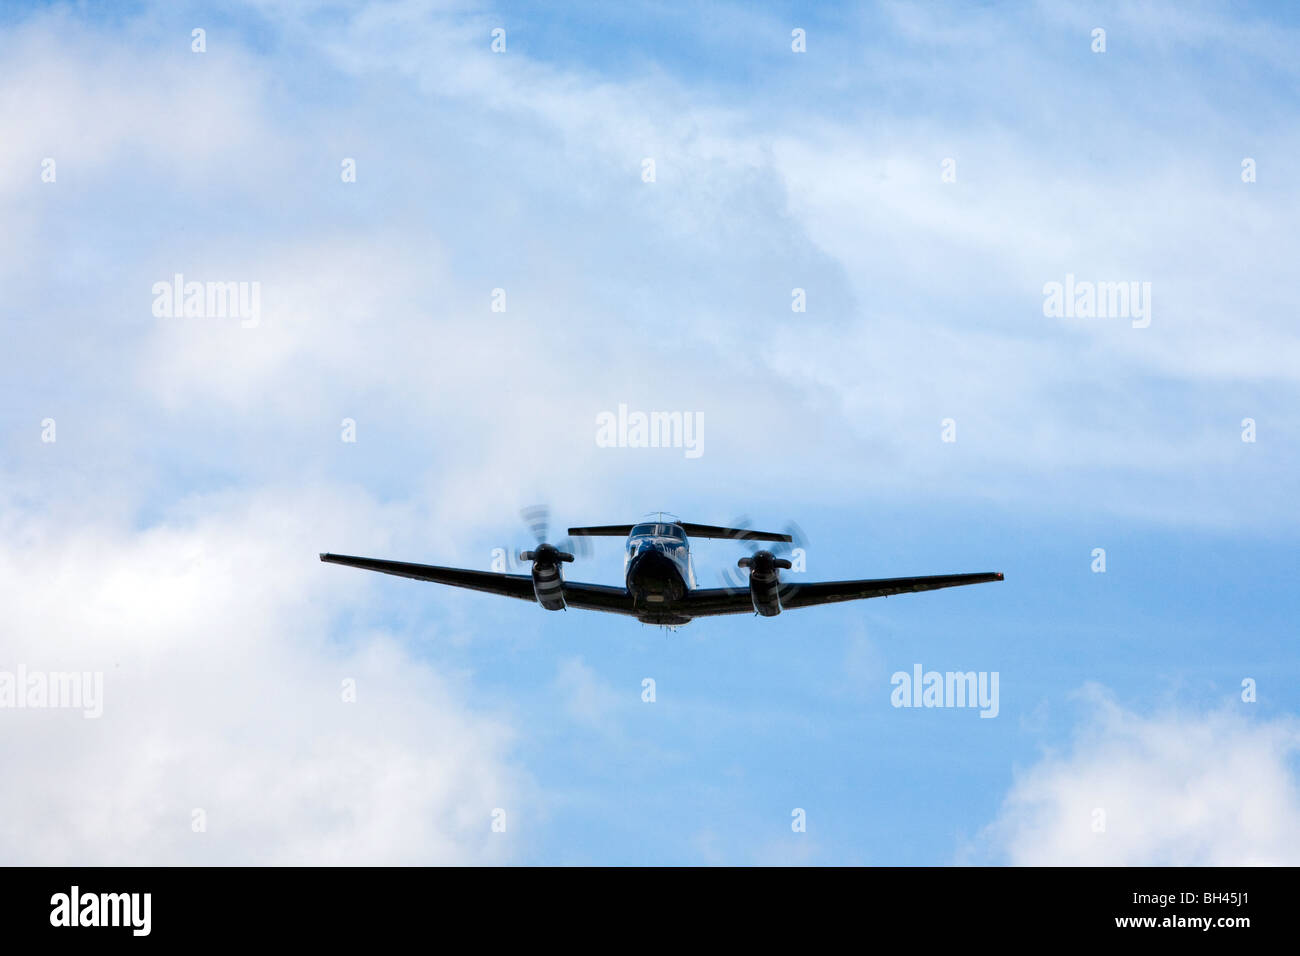 CAA test aircraft making ILS approach at BIrmingham to test landing instrumentation - Stock Image